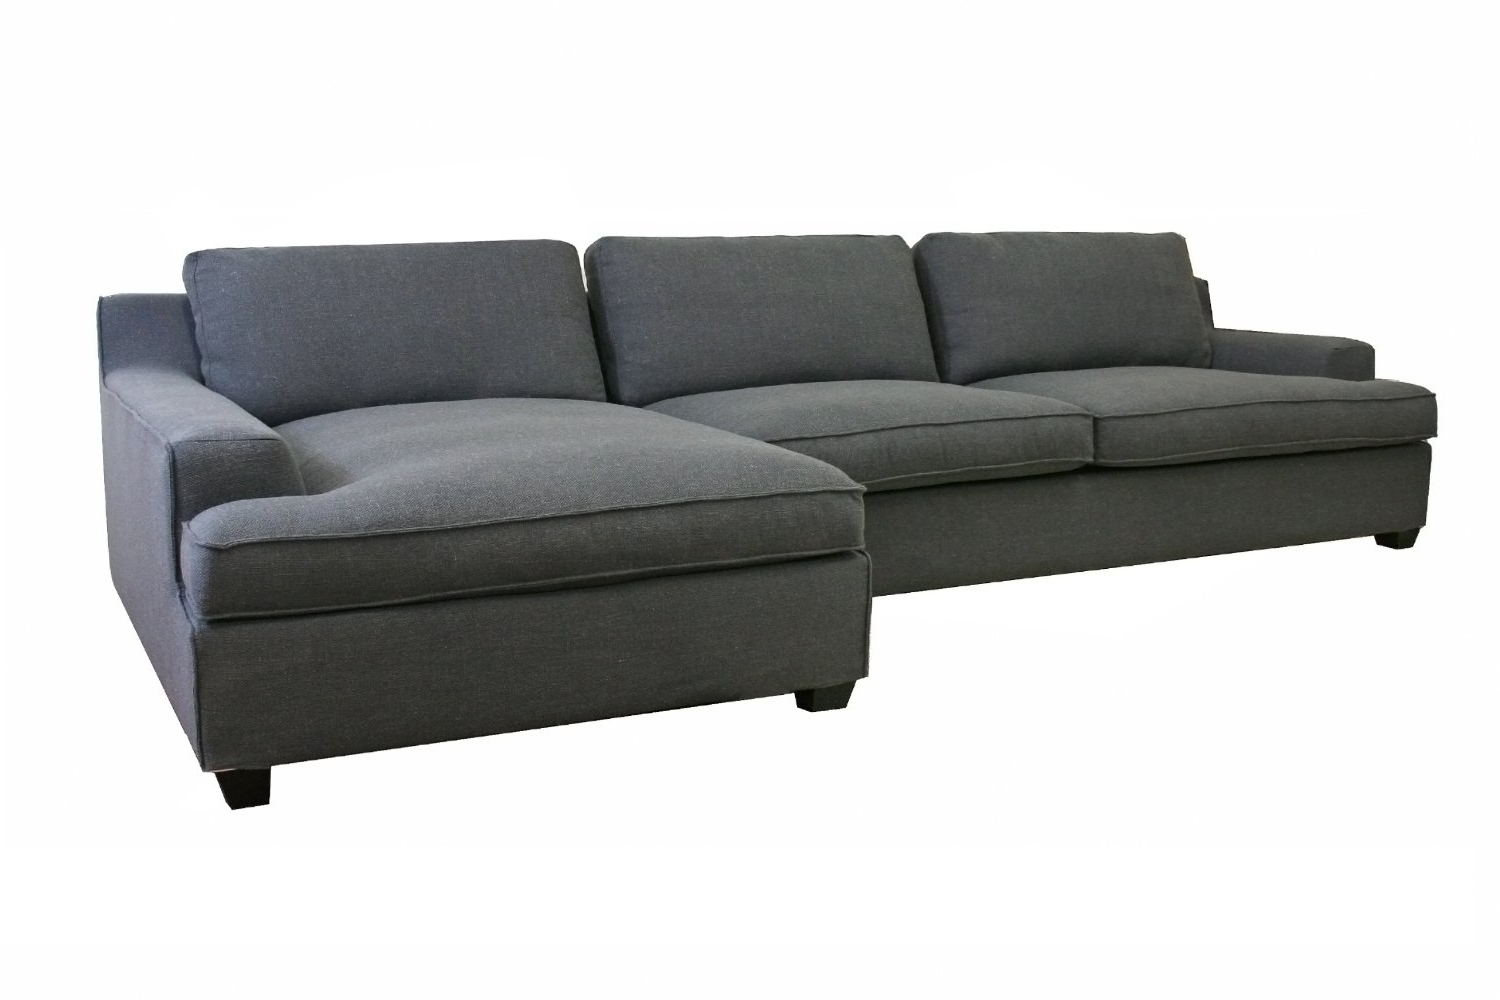 Well Liked Sleeper Sofa Chaises Regarding Sectional Sofa Design: Sleeper Sofa With Chaise Best Ever (View 8 of 15)